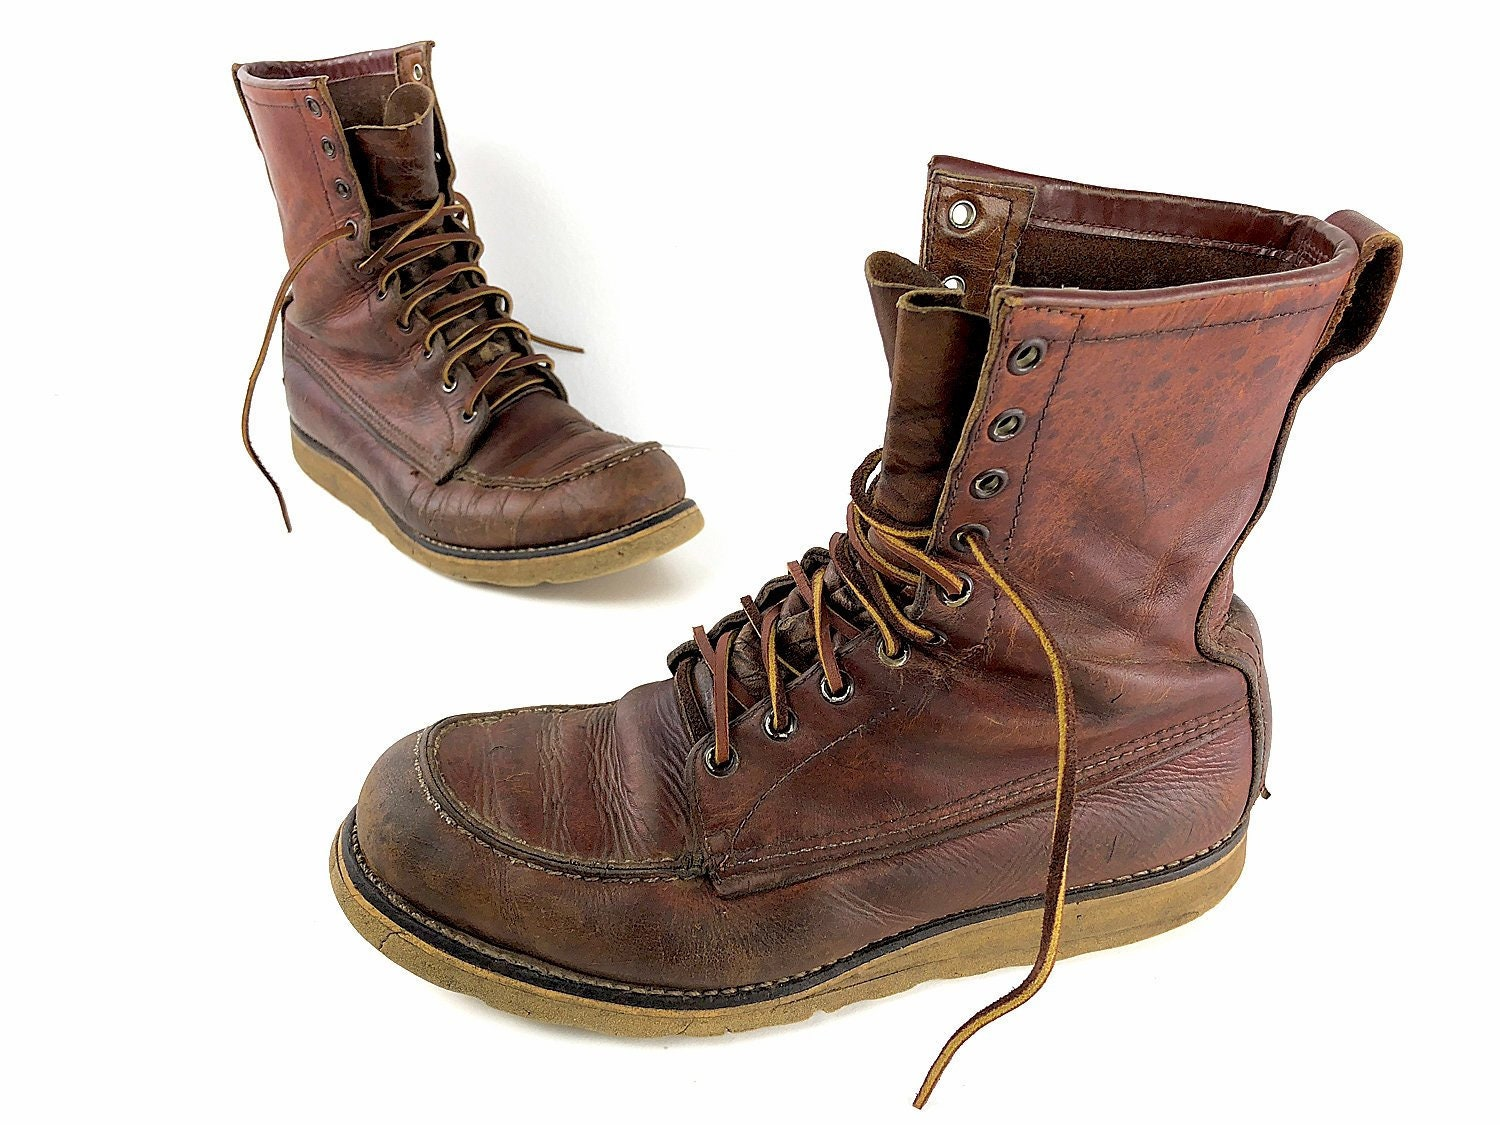 31a4aa7cffdca 60s Red Wing Irish Setter Sport Boots Work Boots Mens 9.5 - Vintage Tall  Red Leather Moc Toe Hunting Boots Cush-N-Crepe Soles Redwing Boots